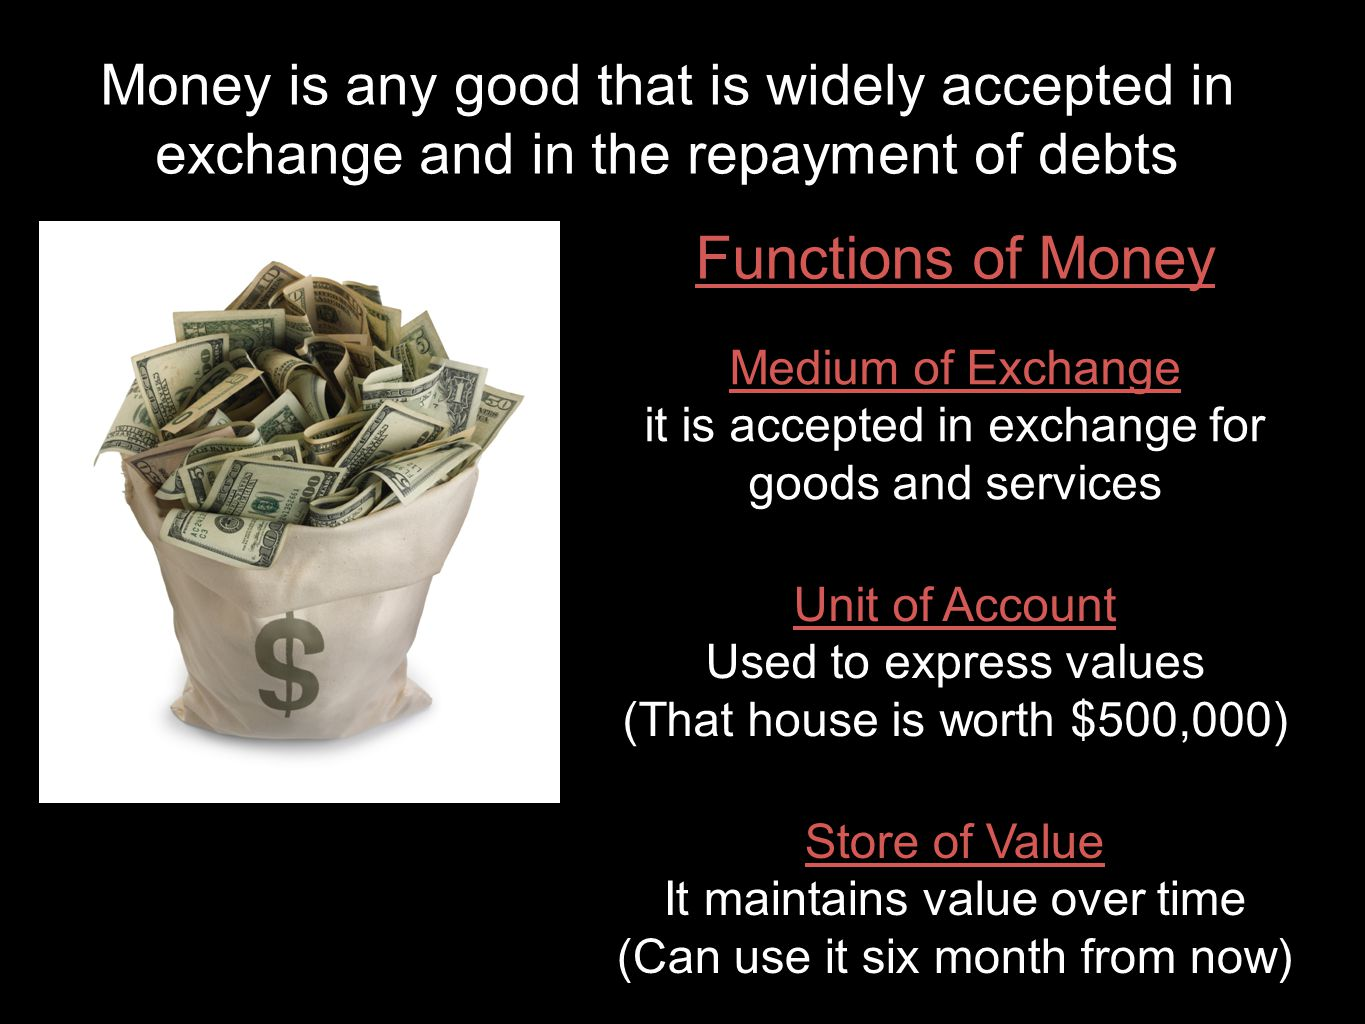 Money is any good that is widely accepted in exchange and in the repayment of debts Functions of Money Medium of Exchange it is accepted in exchange for goods and services Unit of Account Used to express values (That house is worth $500,000) Store of Value It maintains value over time (Can use it six month from now)